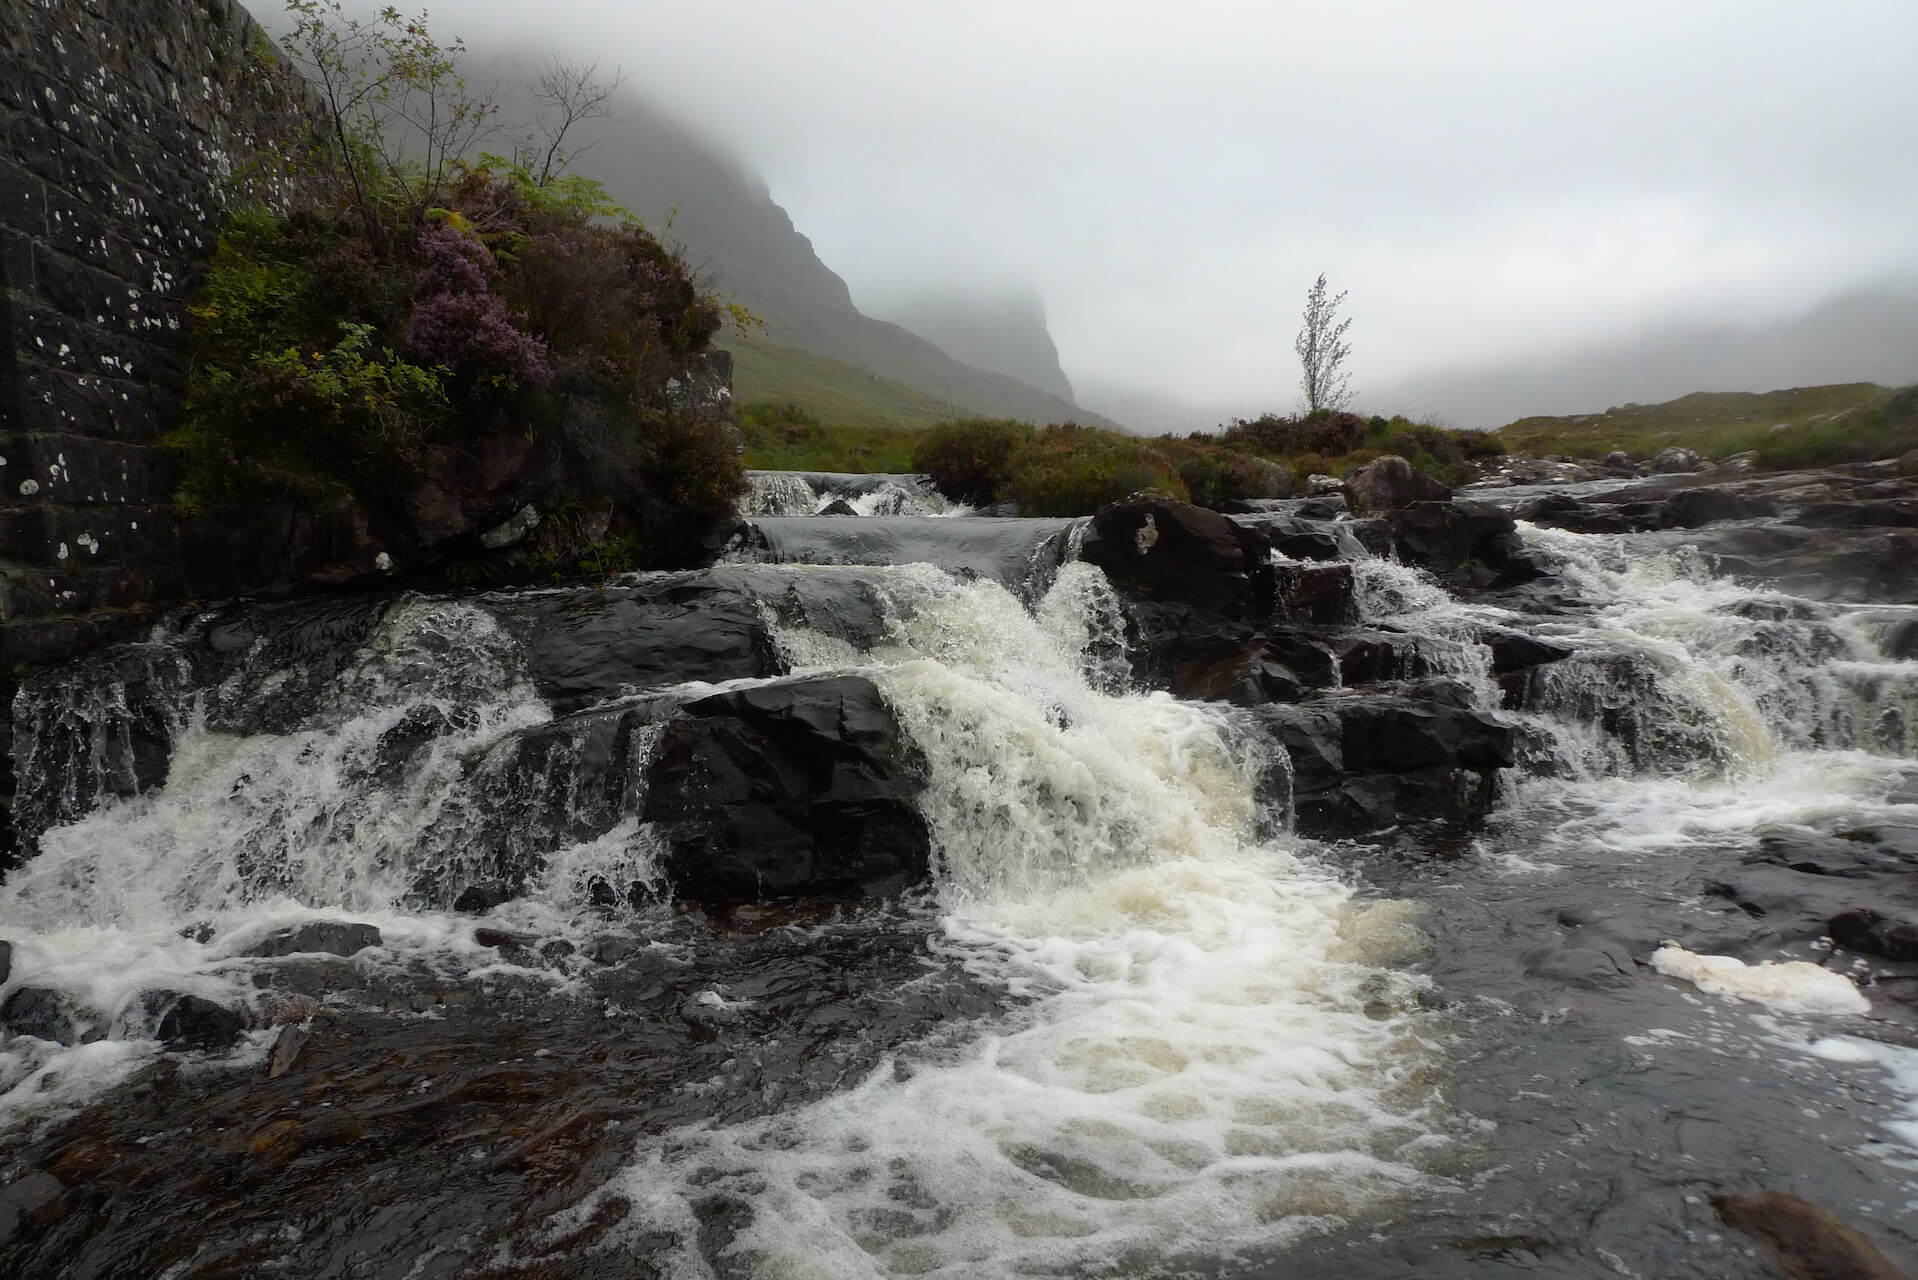 Russel Burn at the foot of the Bealach na Bá